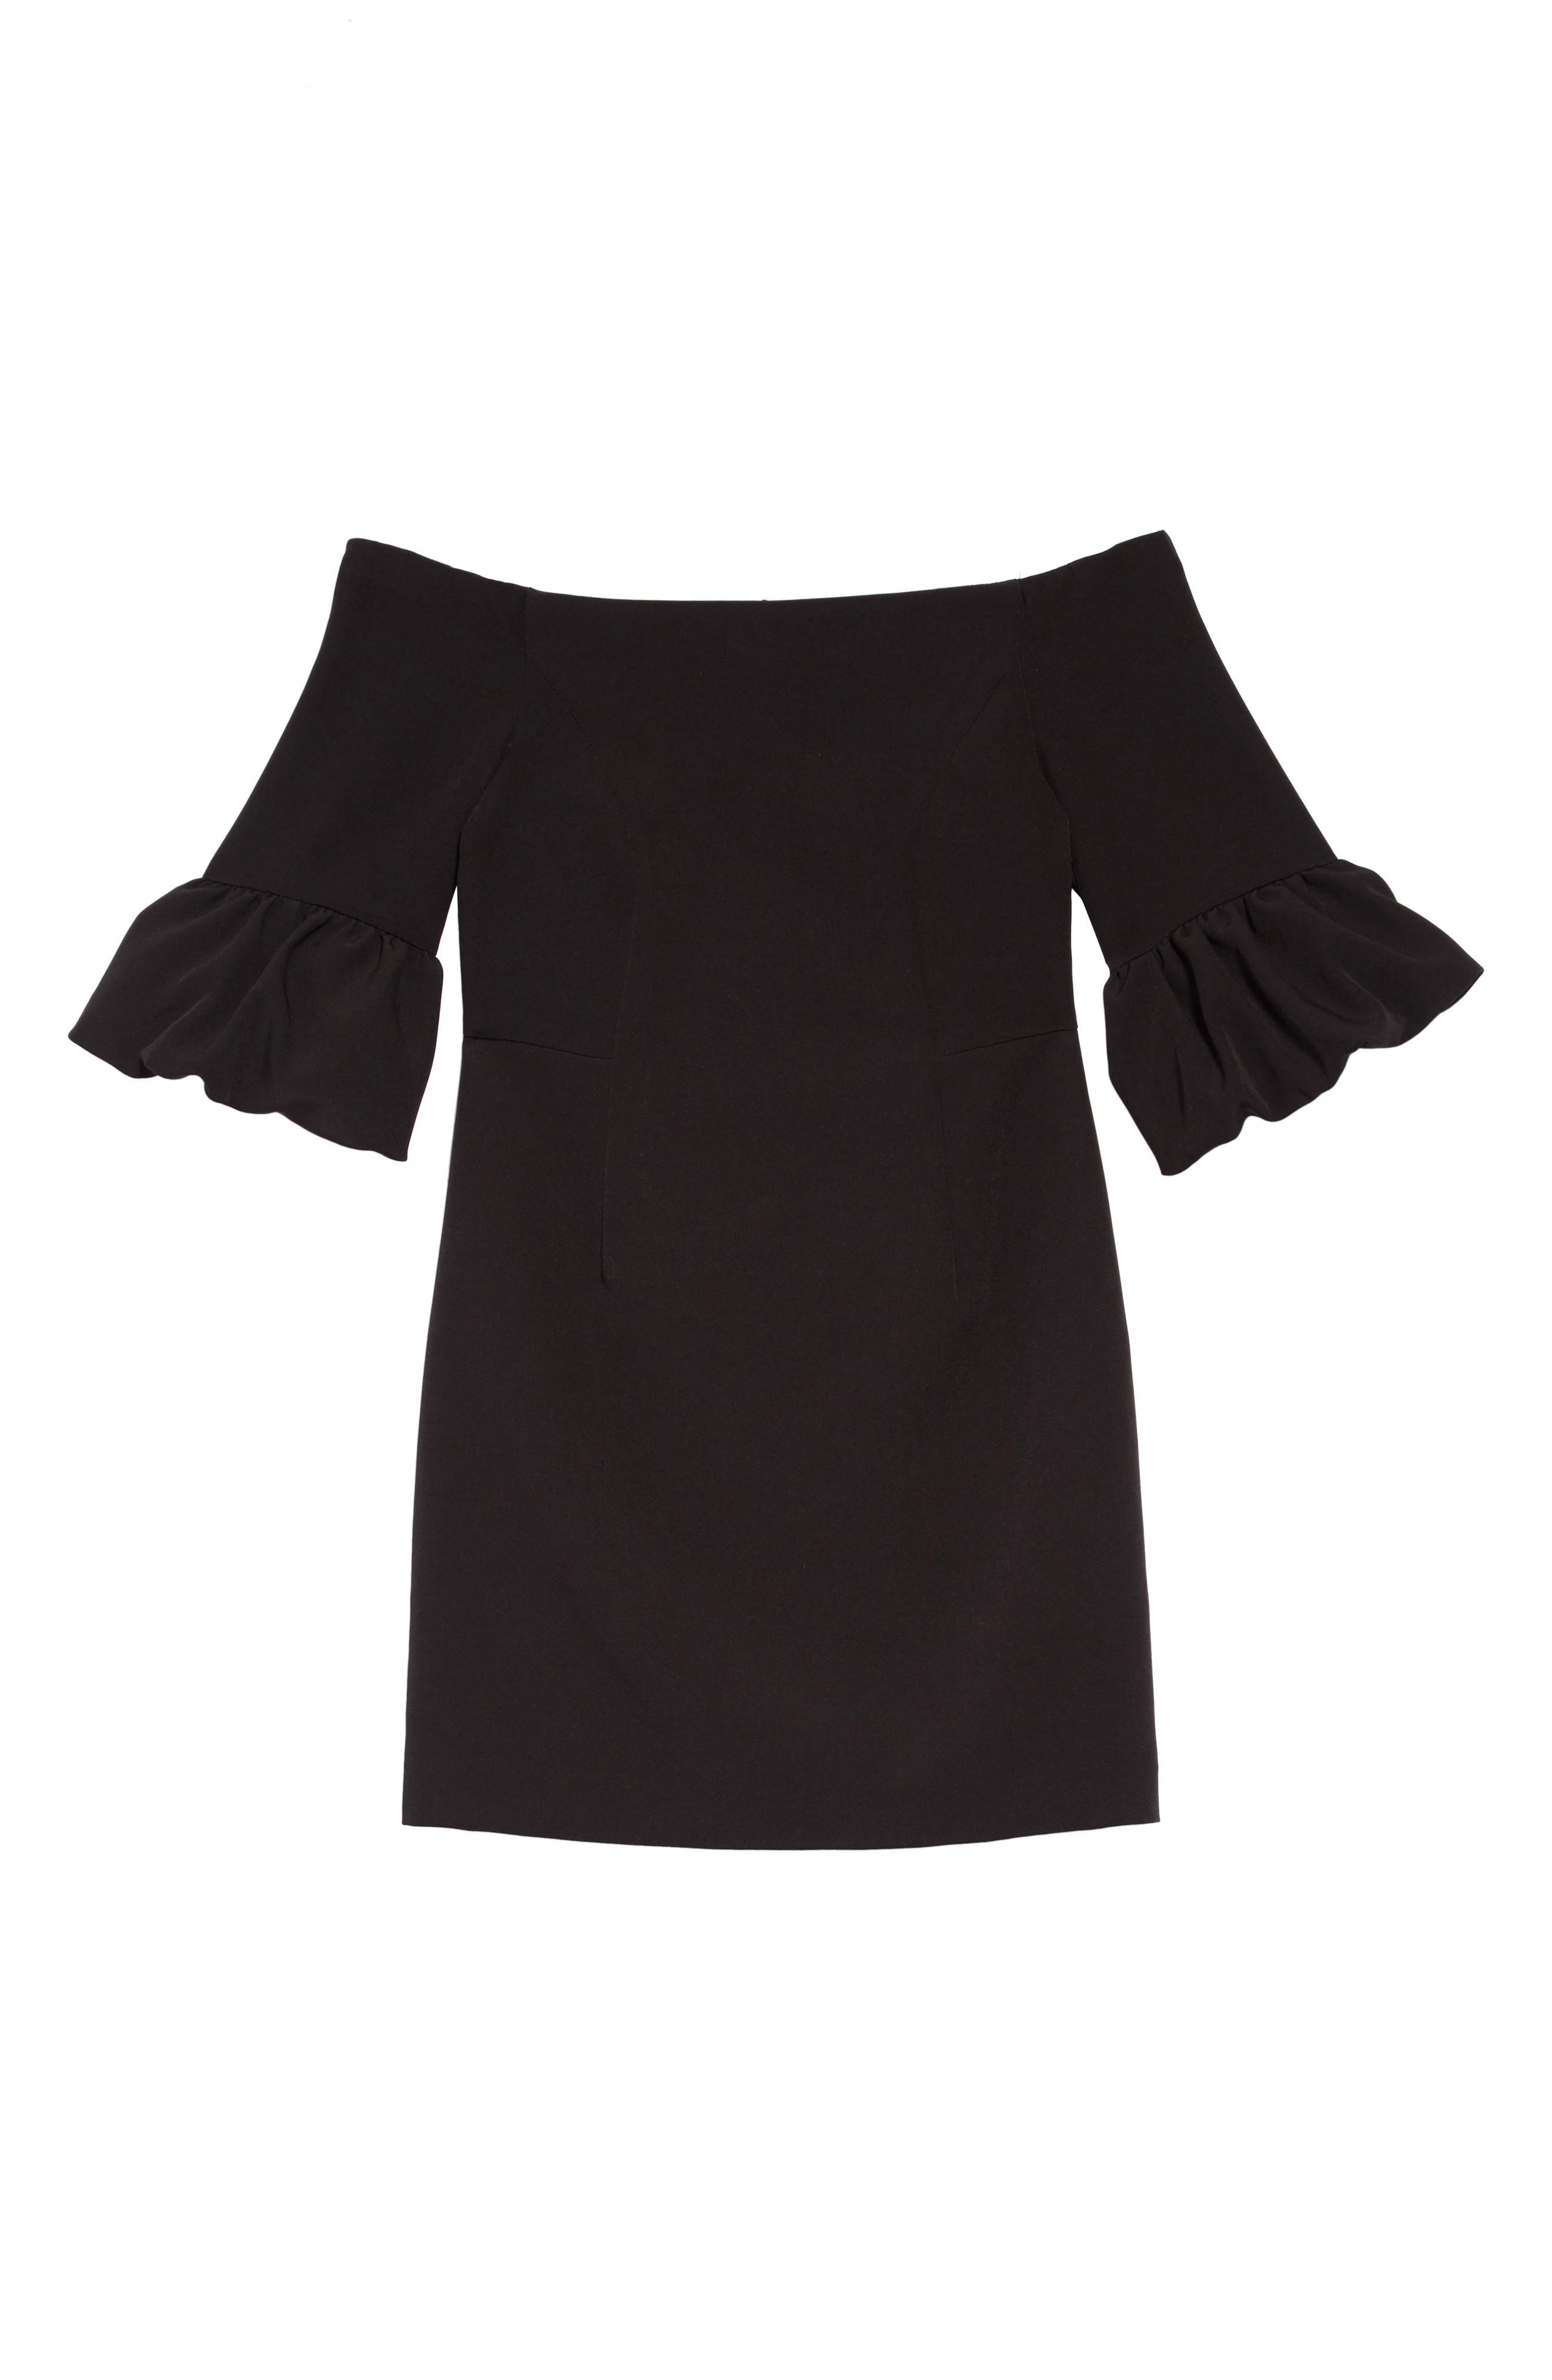 Samantha Ruffle Sleeve Dress,                             Main thumbnail 1, color,                             BLACK